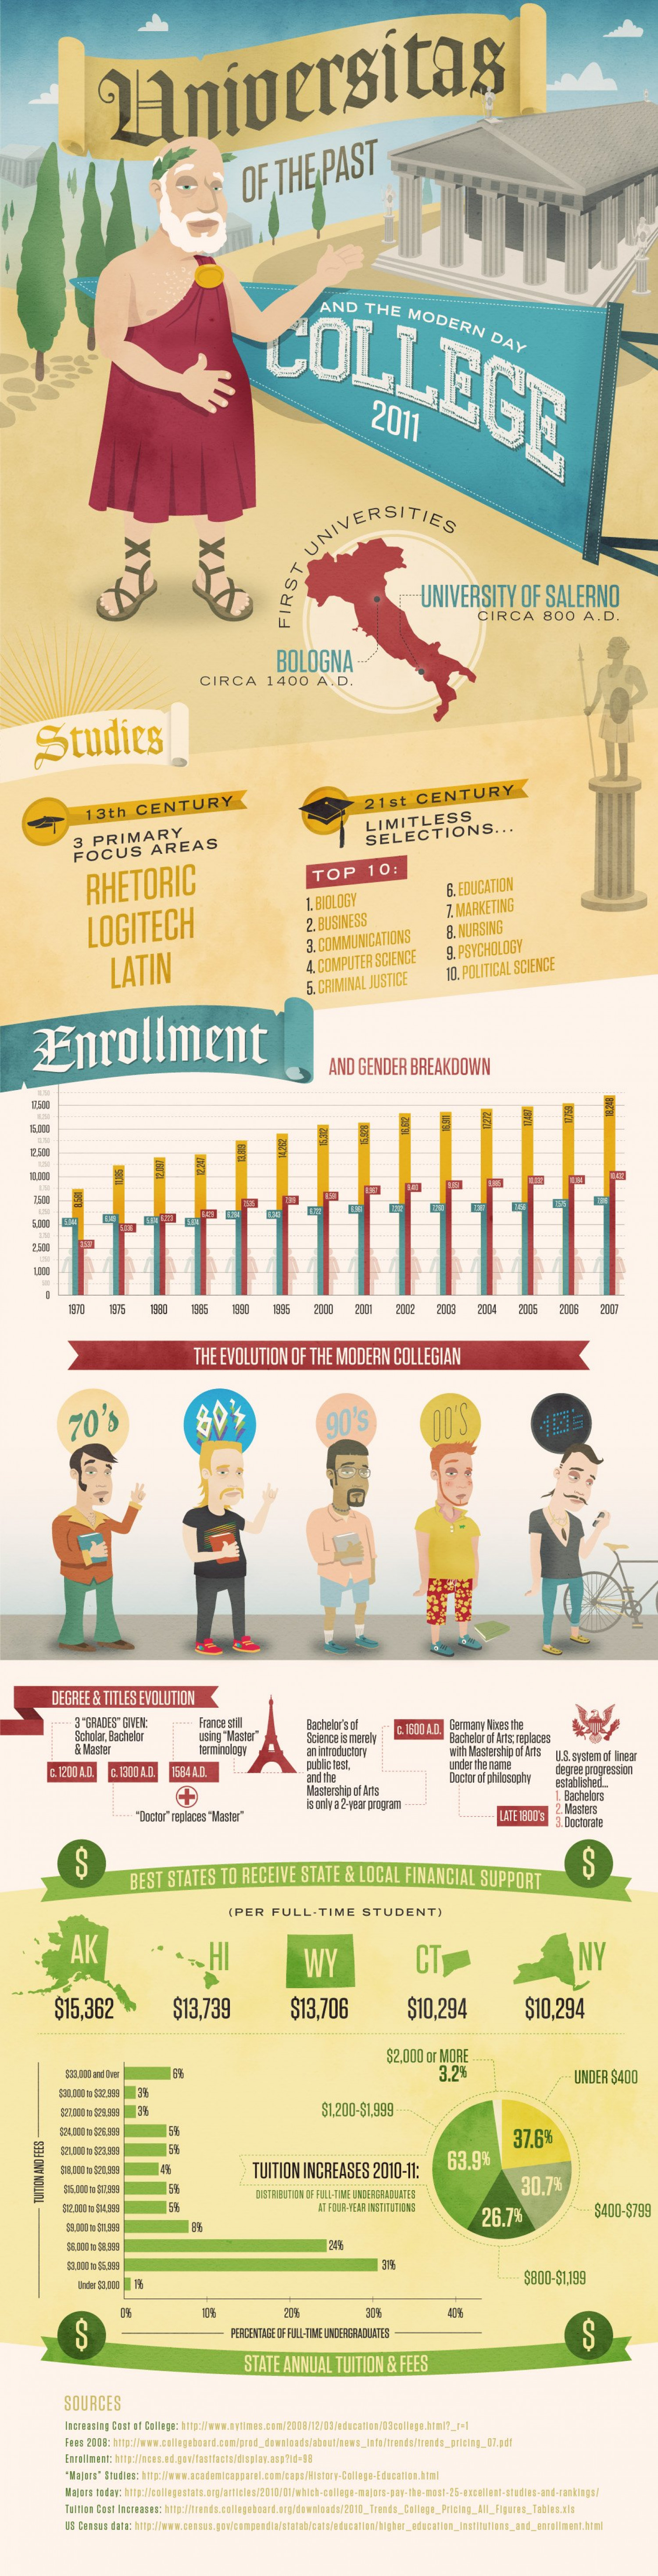 The College University Timeline Infographic